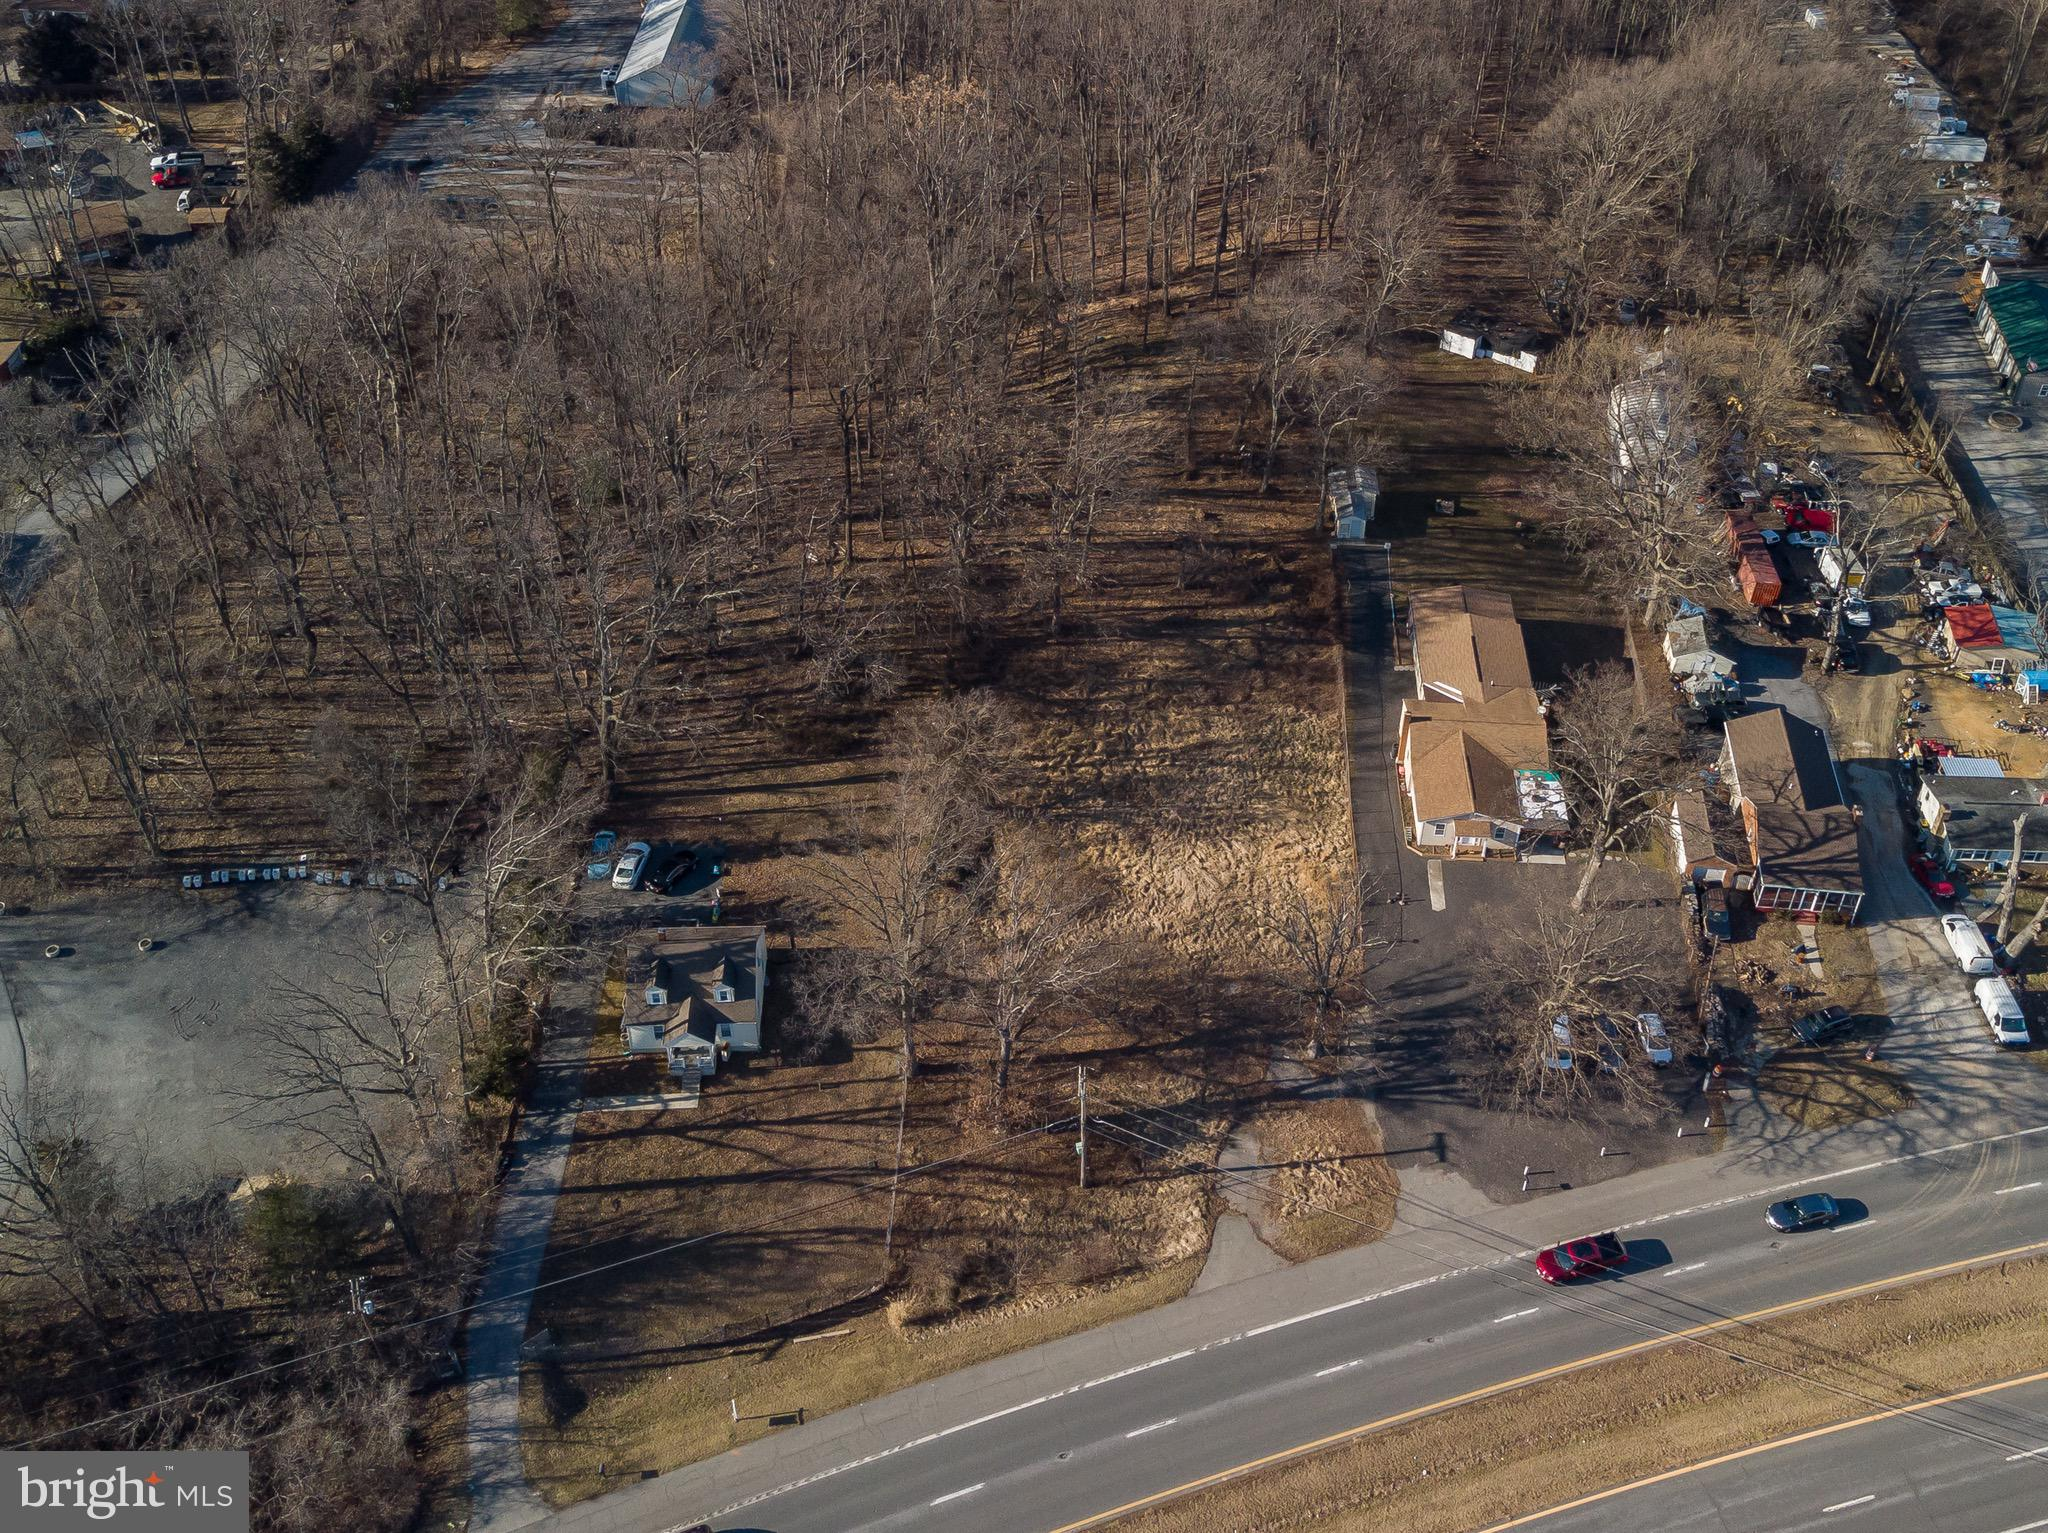 ATTENTION ALL INVESTORS, BUILDERS, AND DEVELOPERS! The value is in the TWO parcels of land - 16100 a